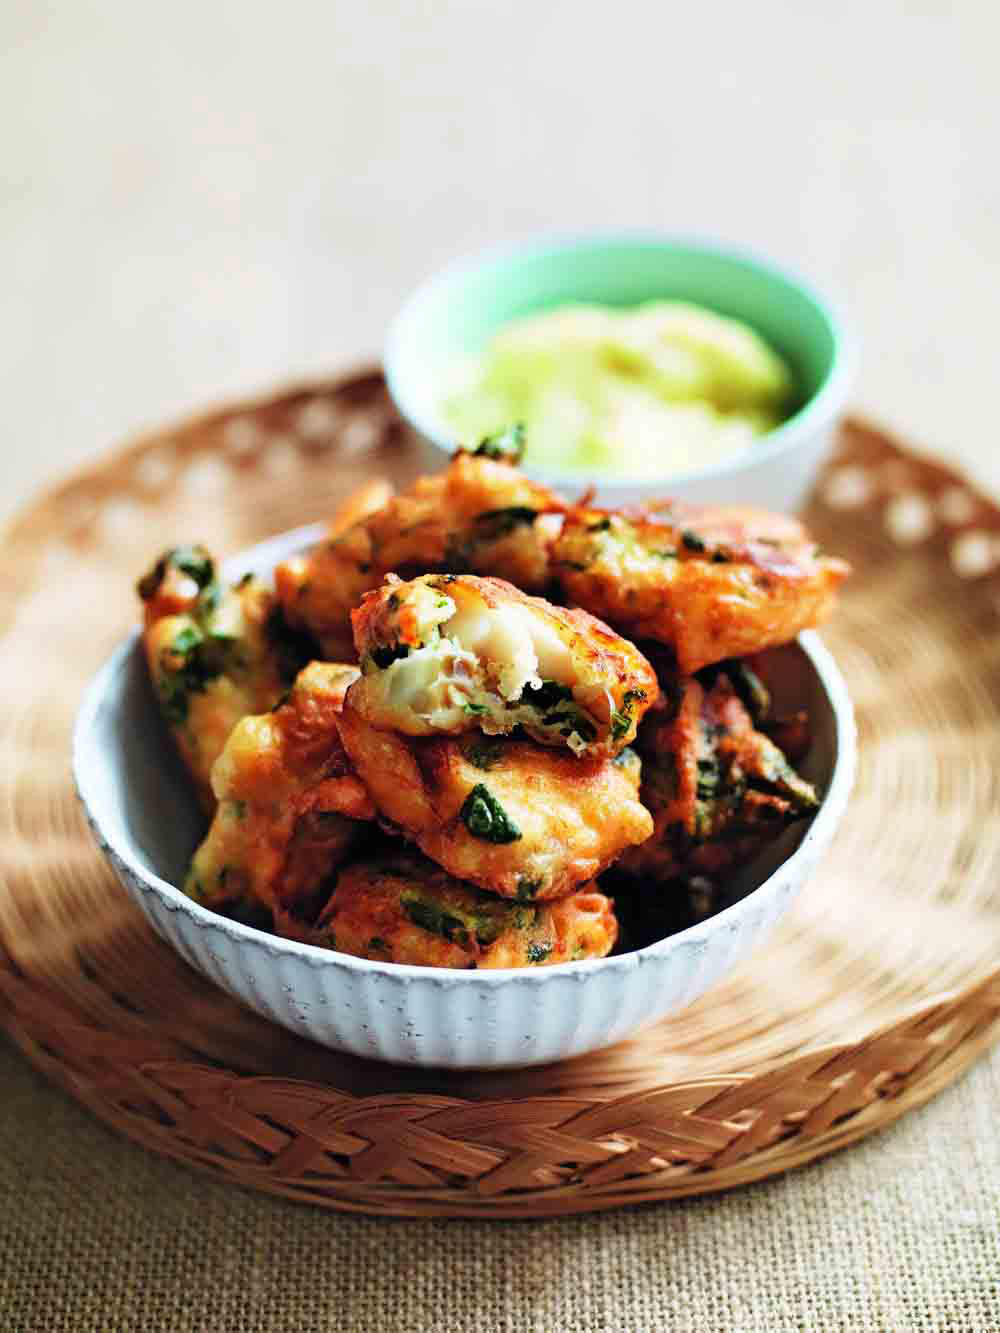 Salt cod fritters with spinach